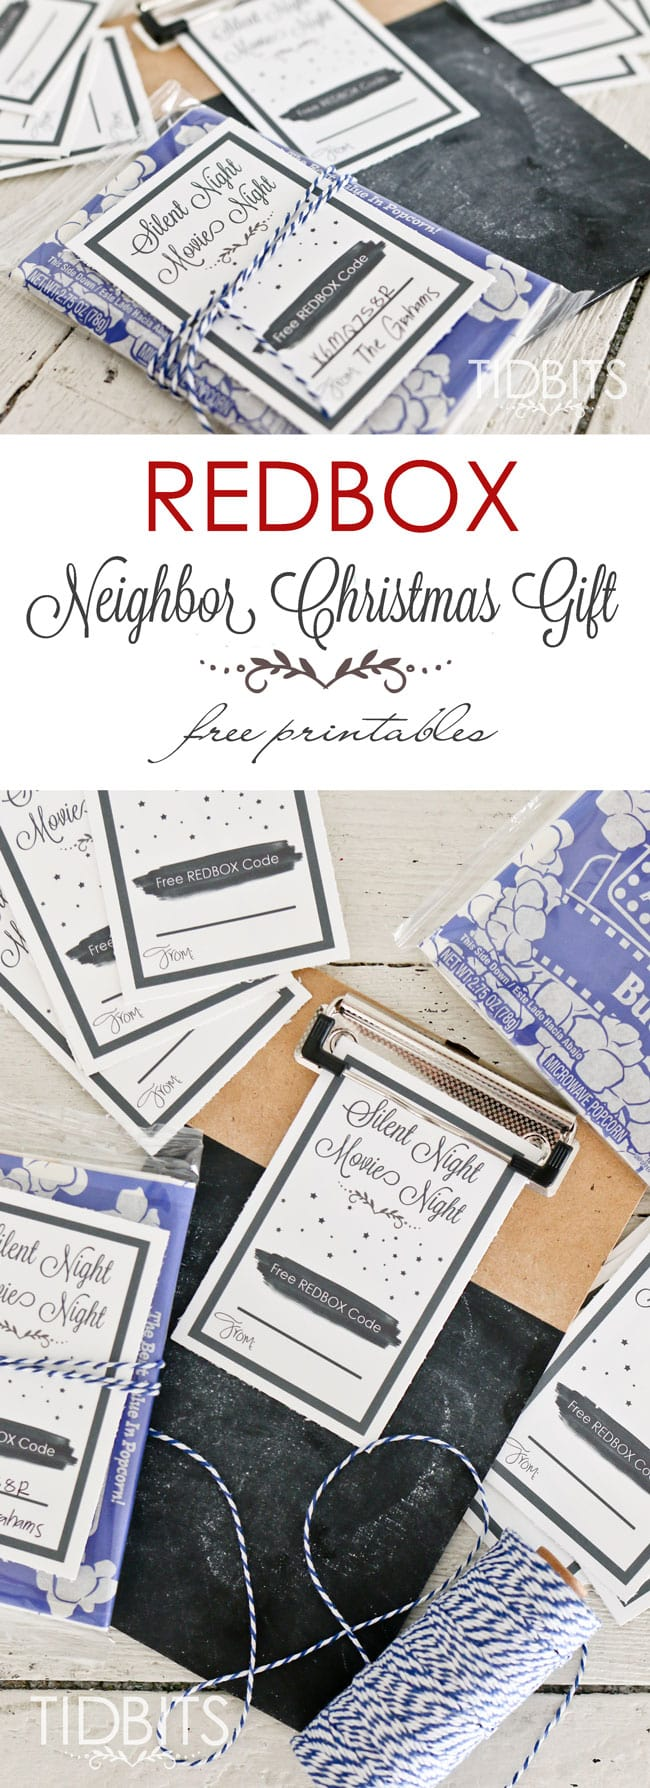 Redbox neighbor Christmas gift - Get your FREE printable, add a redbox code, attach it to a bag of popcorn - most practical and useful neighbor gift ever!